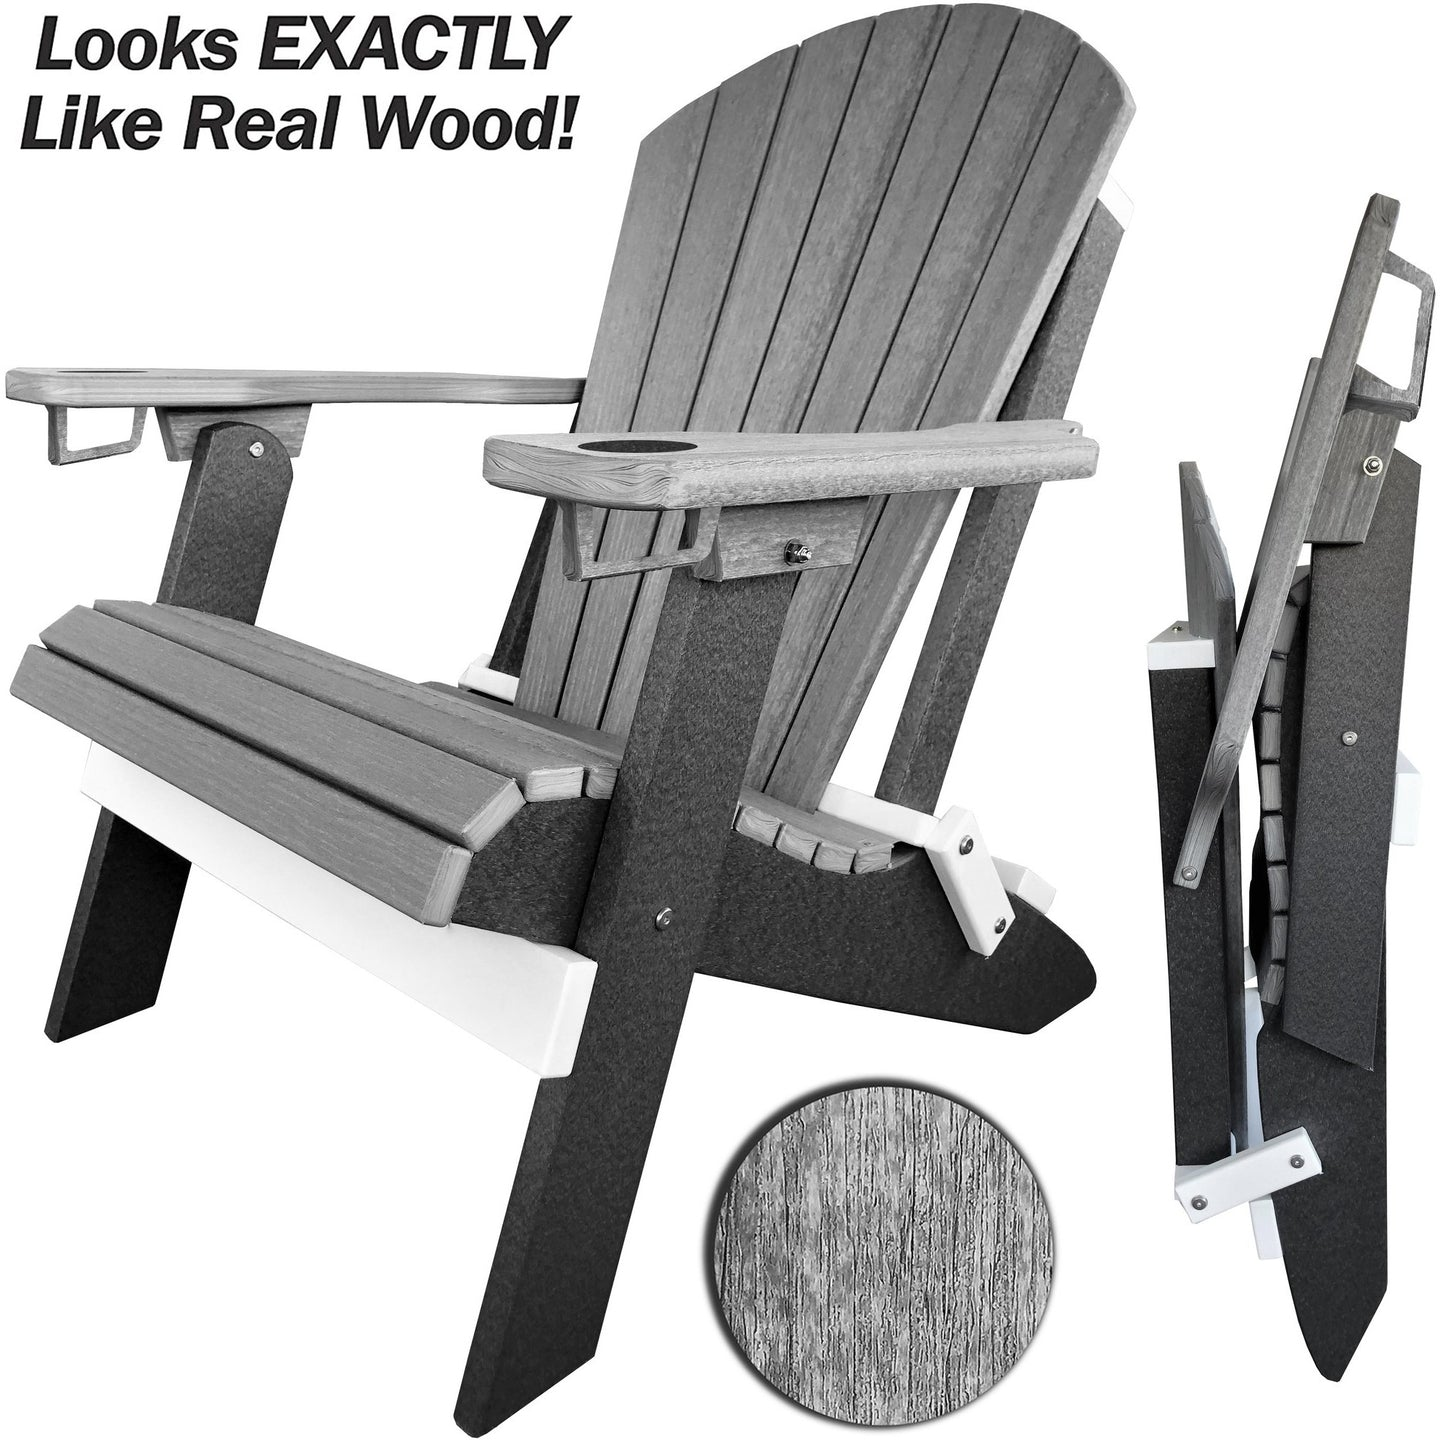 Set of 6 - DuraWeather Poly® Signature Collection King Size Folding Adirondack Chair (With Built In Cup Holders)